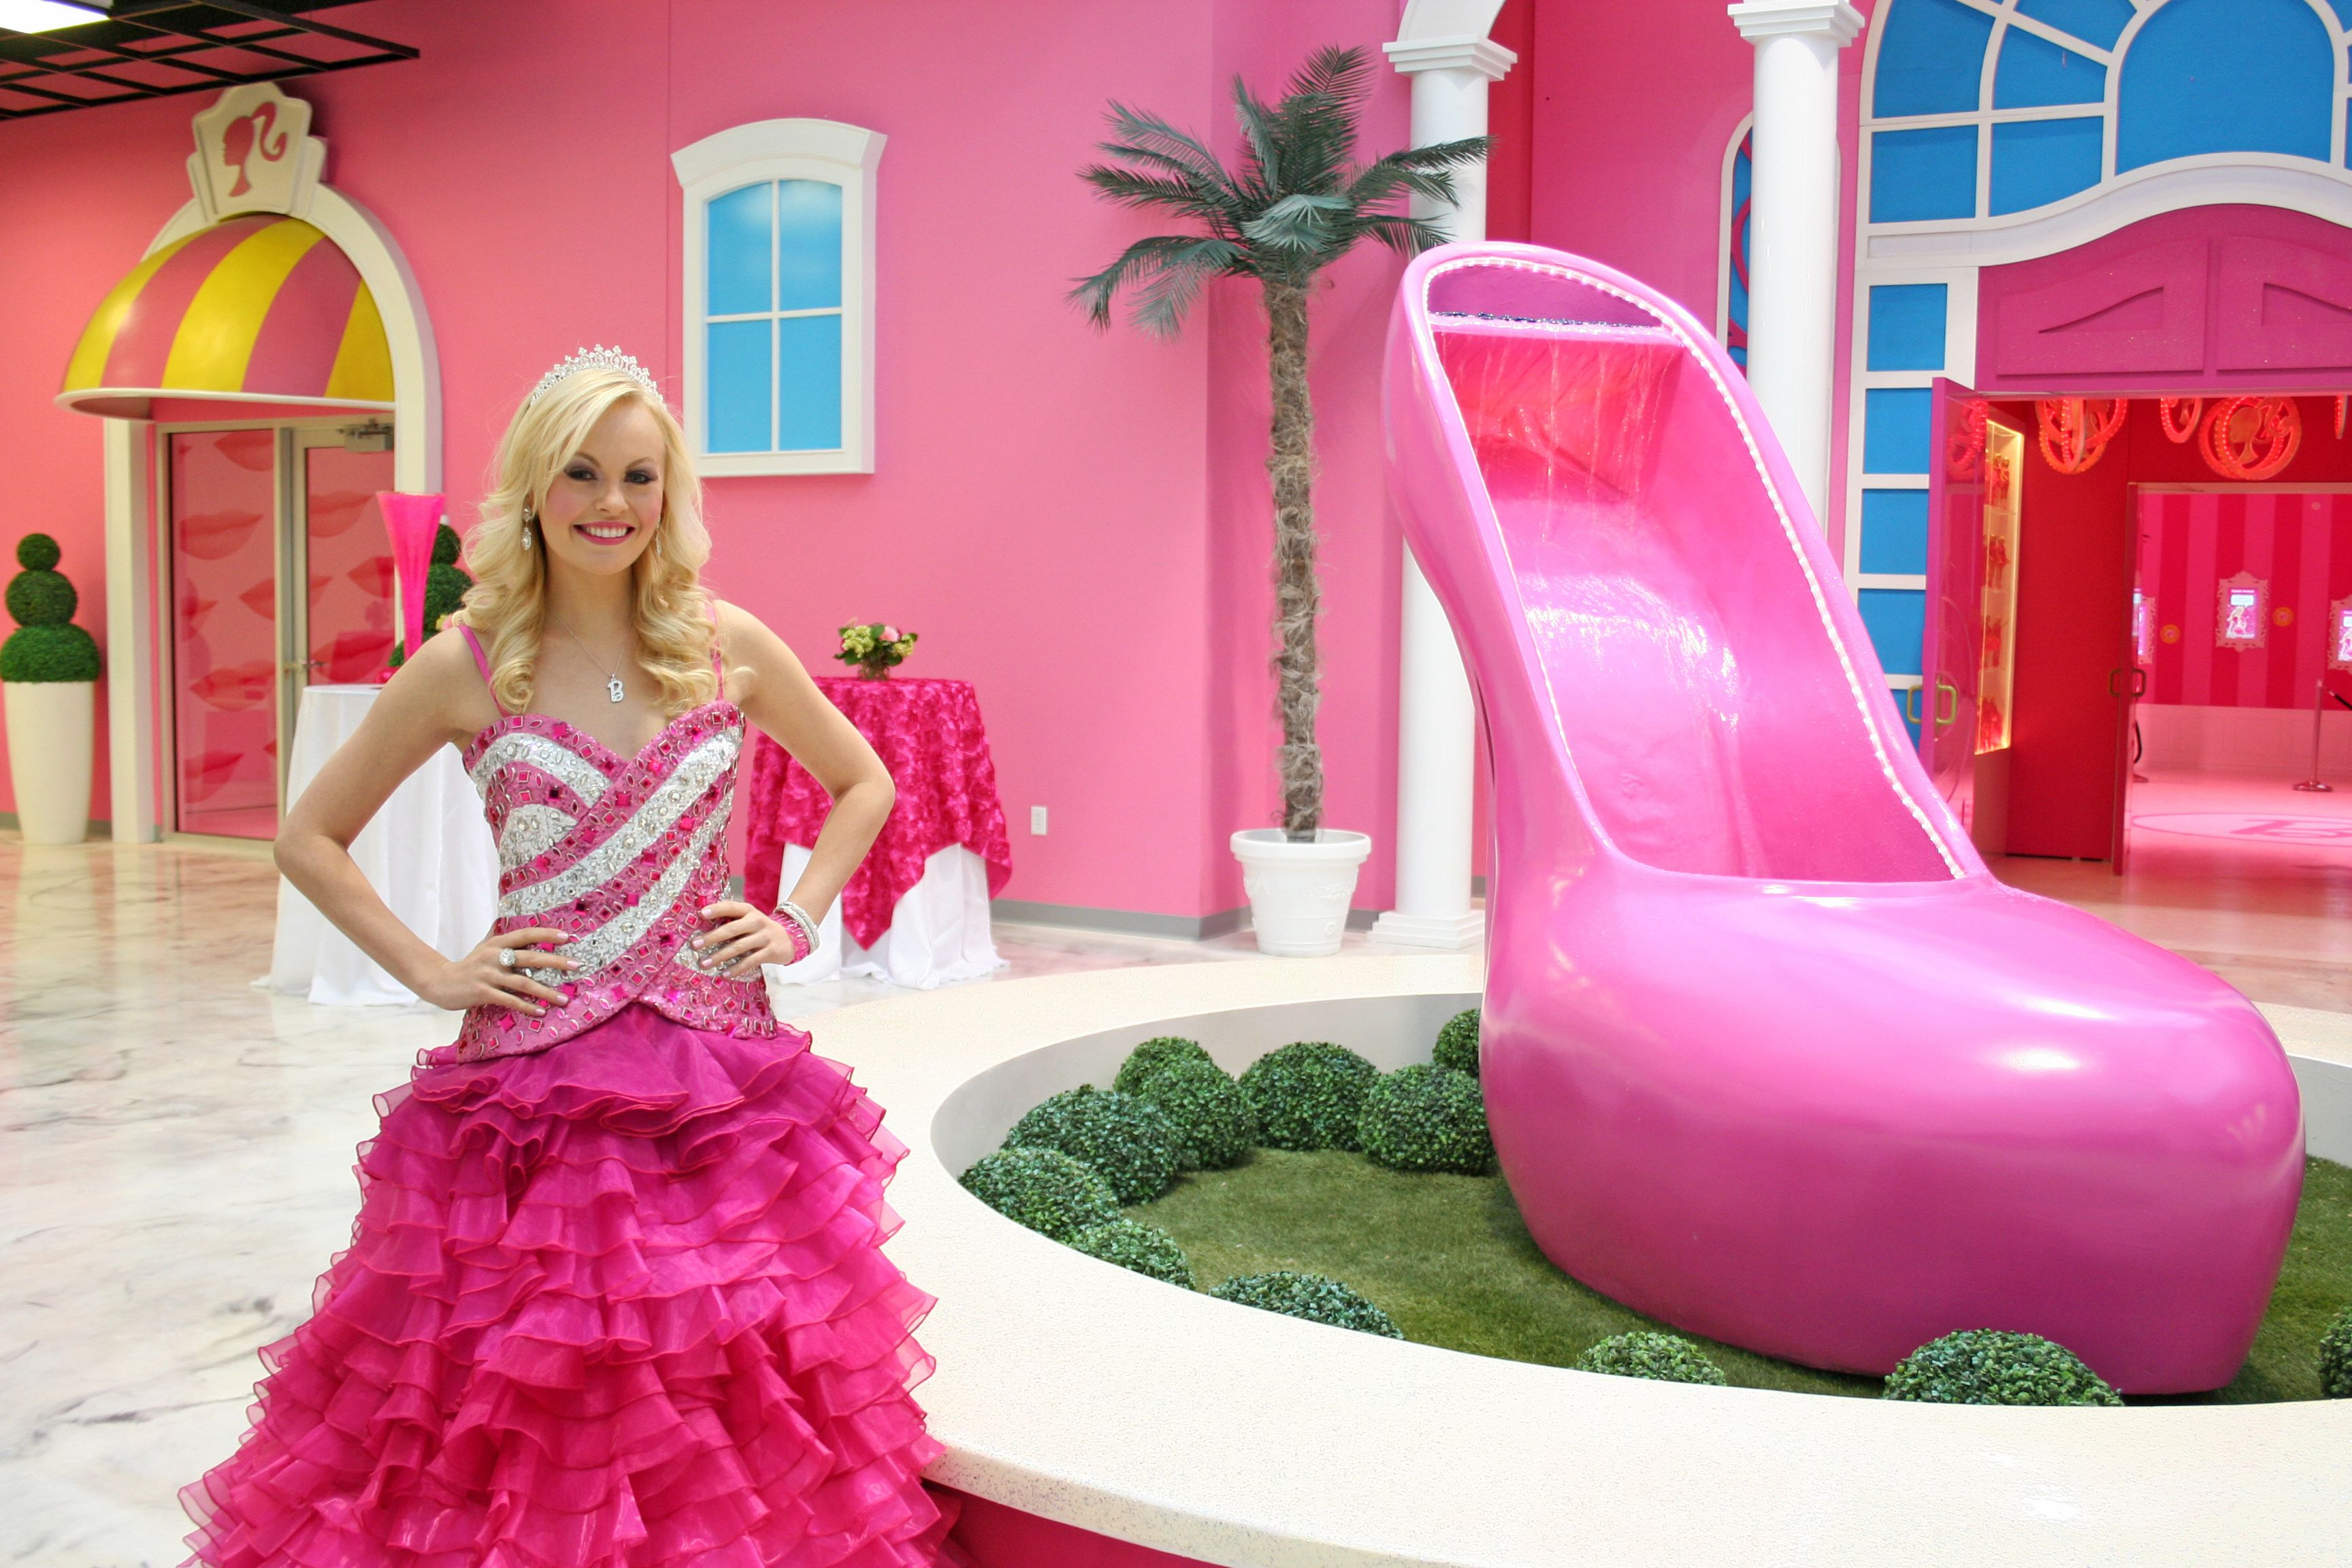 Pictures of the biggest barbie house